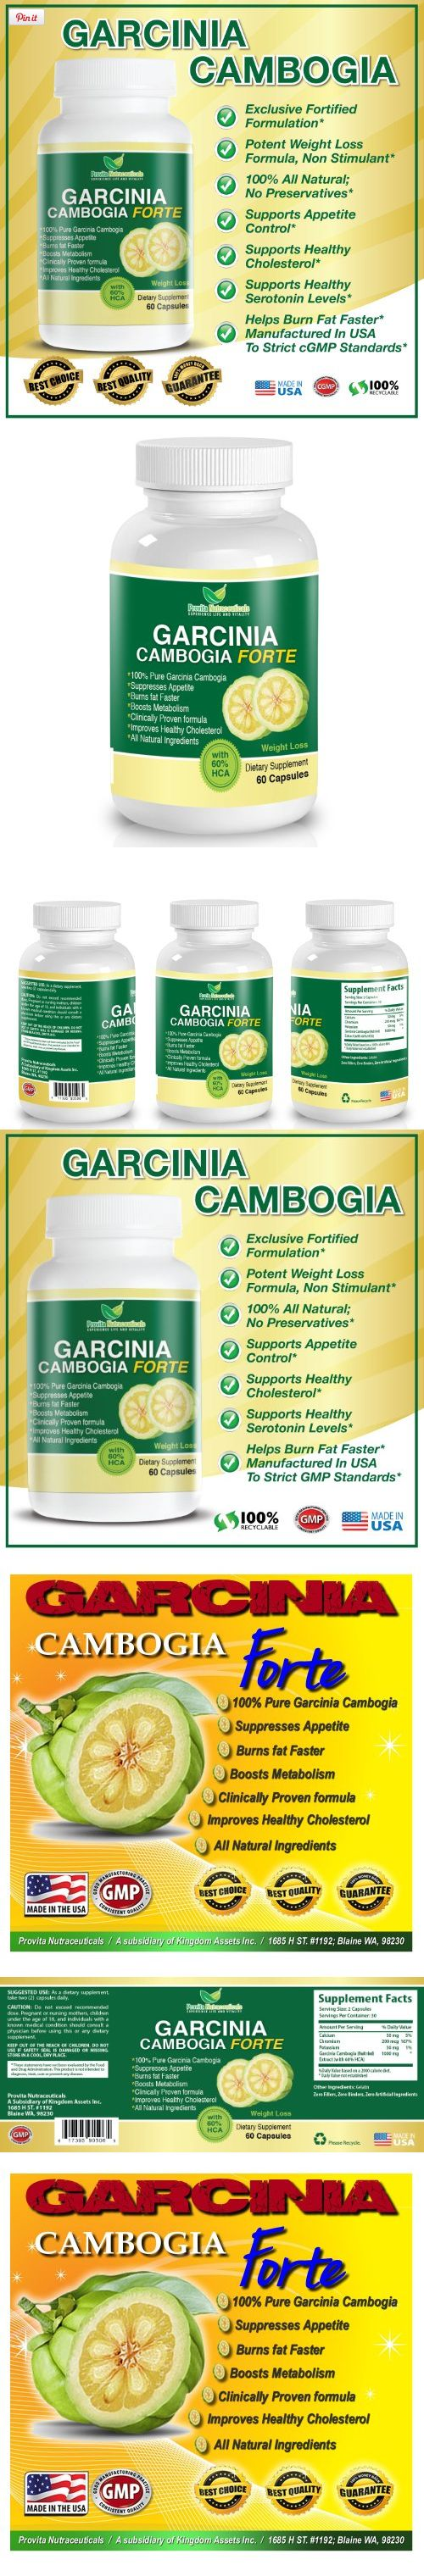 Garcinia forte and cleanse plus malaysia